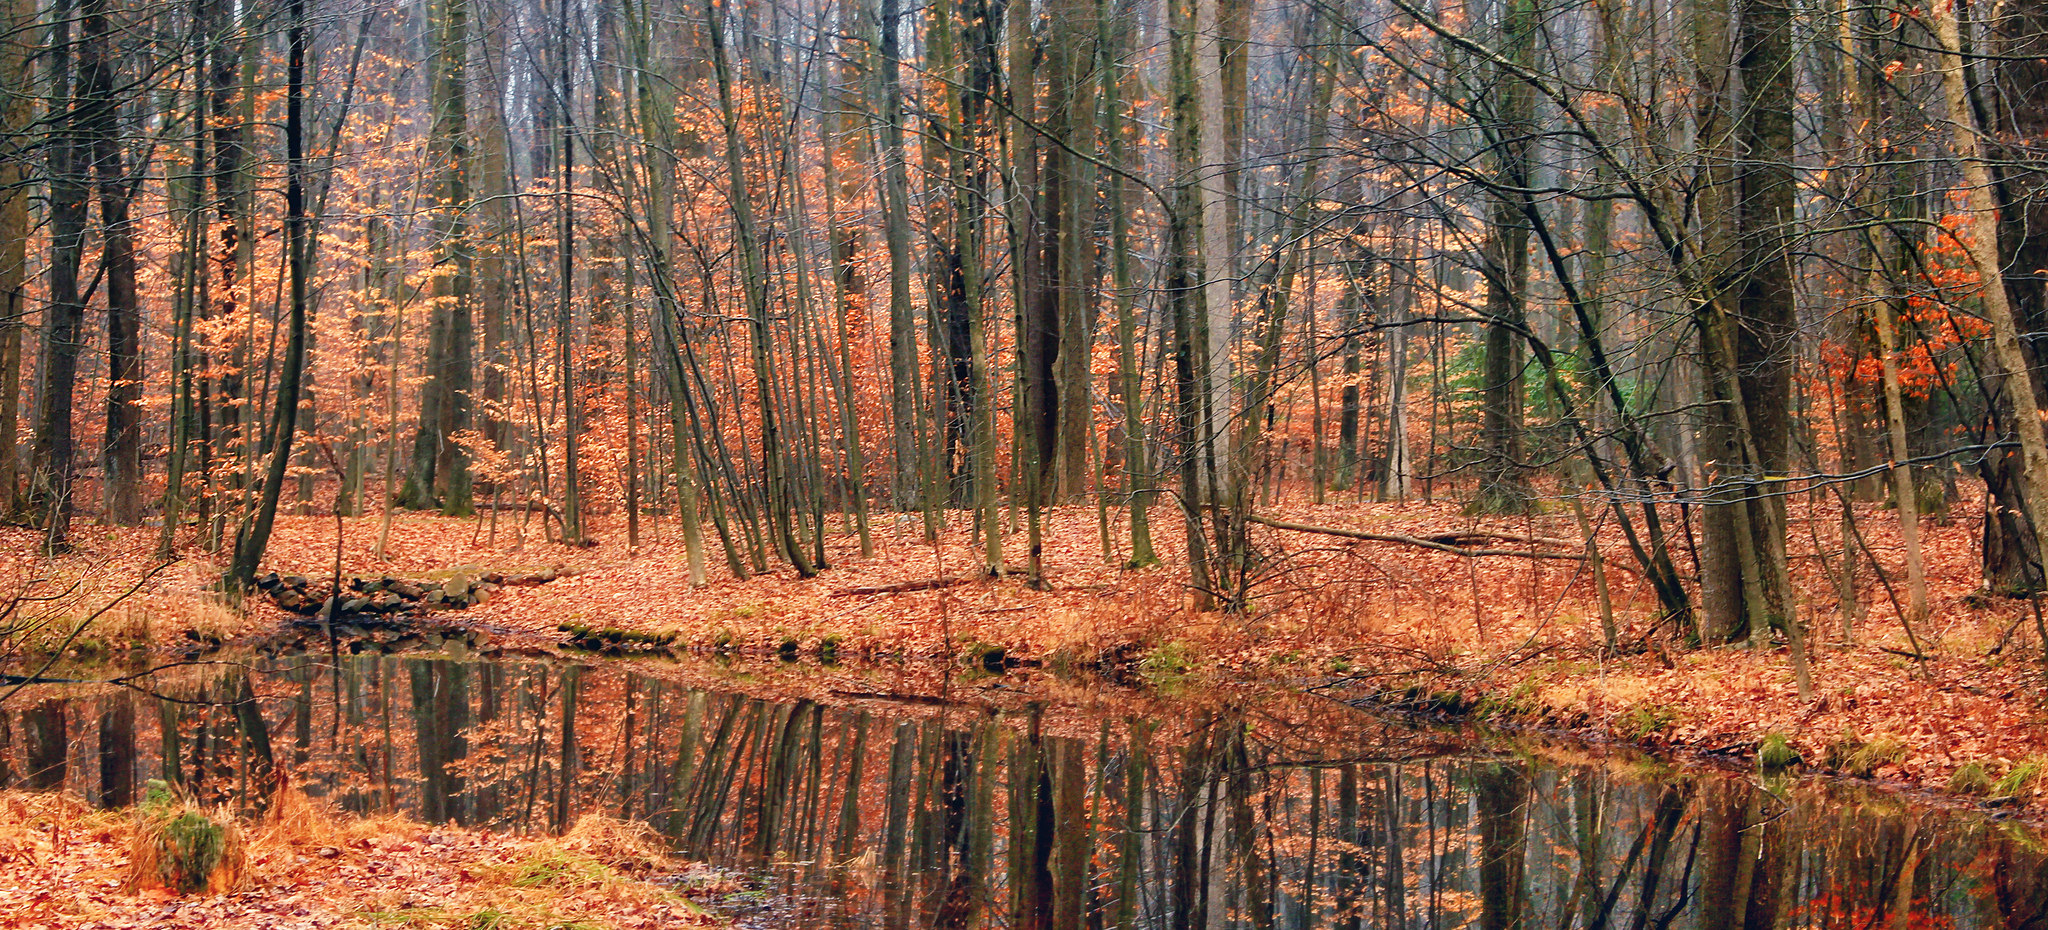 15 Photos Of The Most Beautiful Nature In Pennsylvania